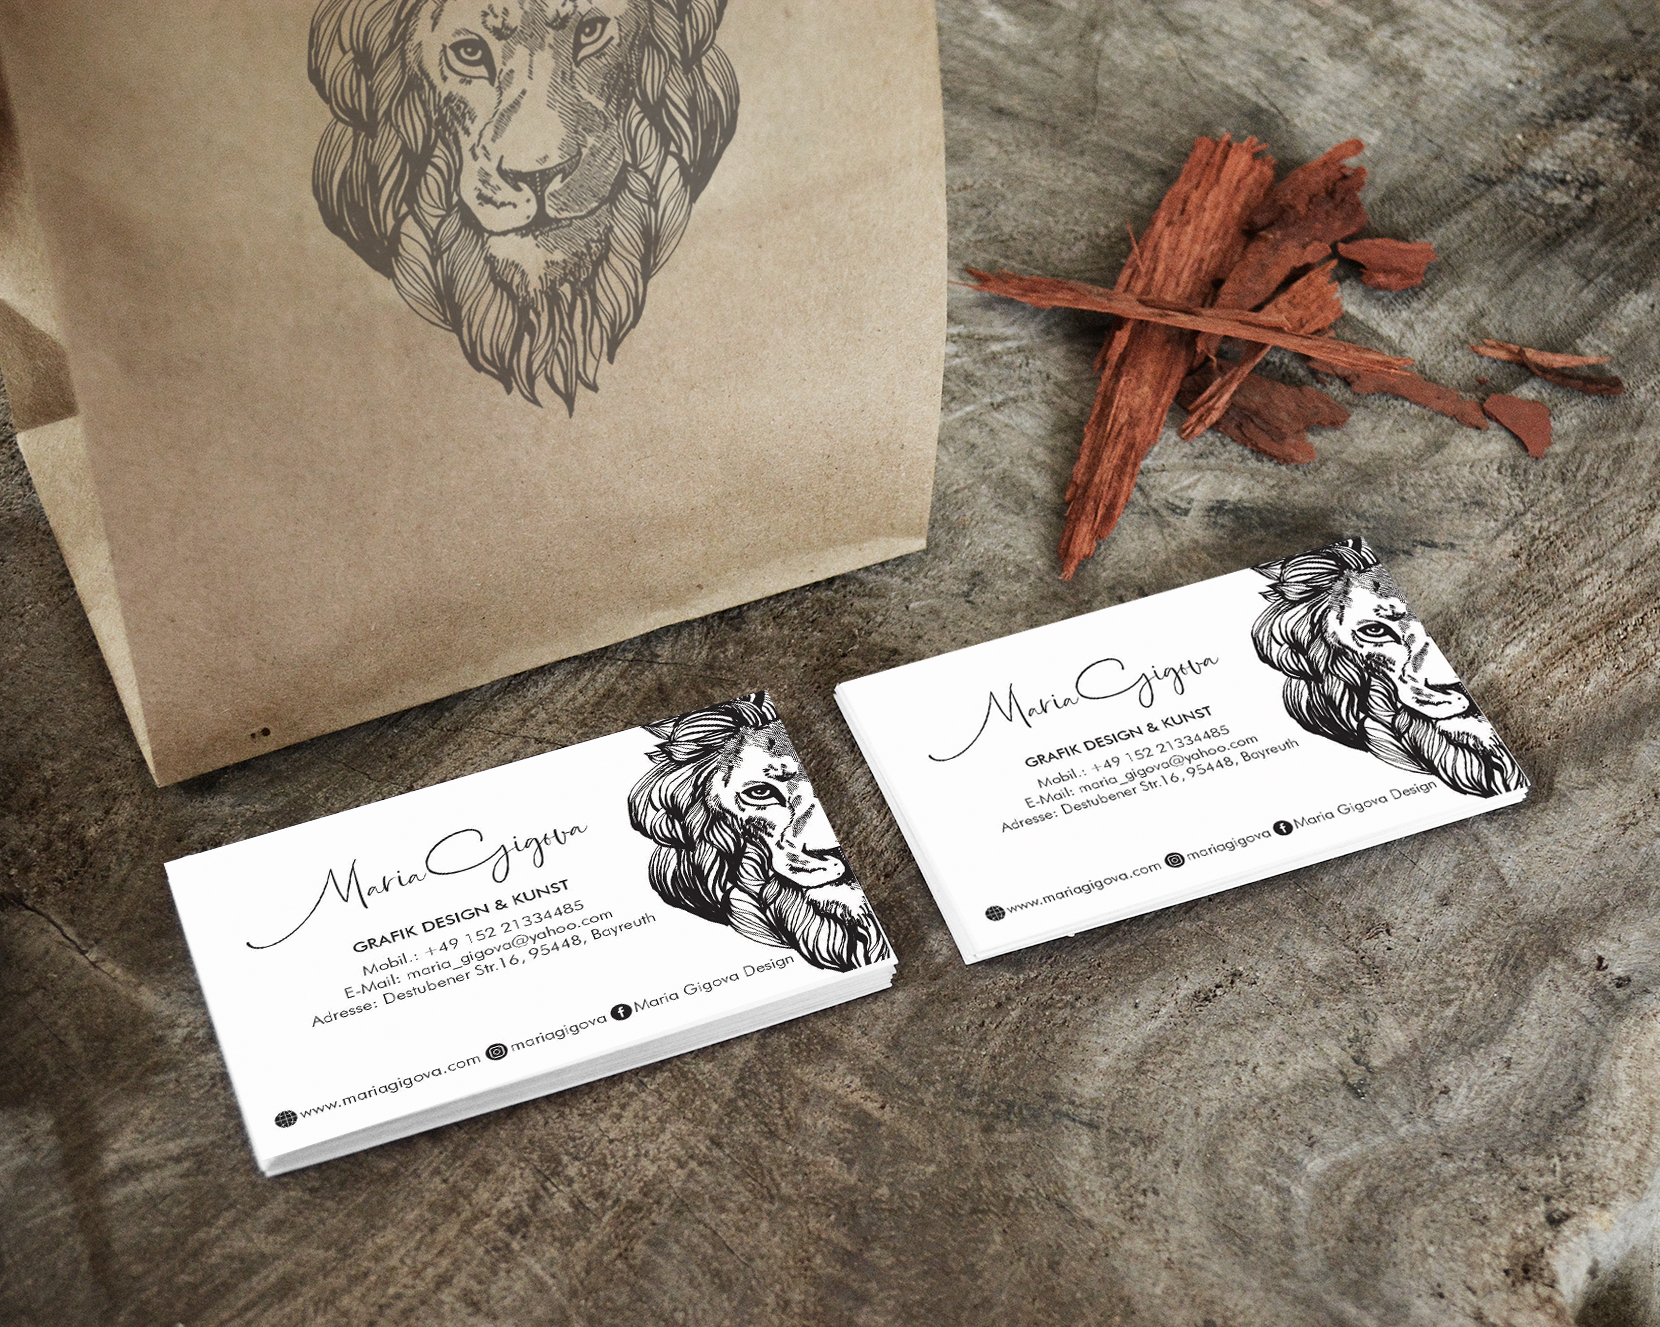 Business card Maria Gigova